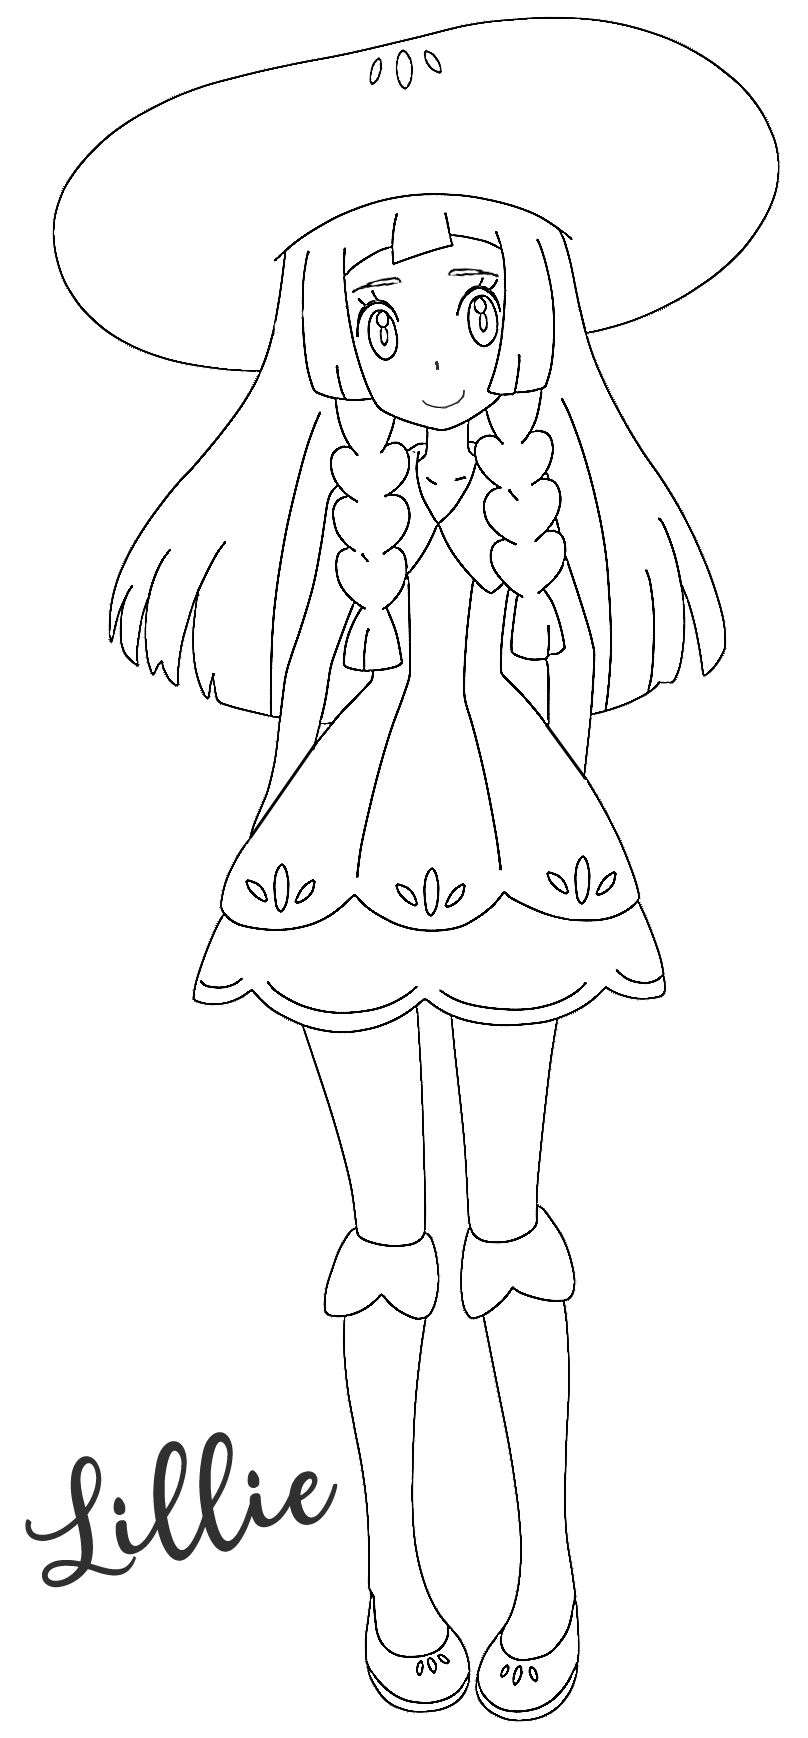 Lillie Coloring Page Pokemon Sun Moon Alola Lily Lilly